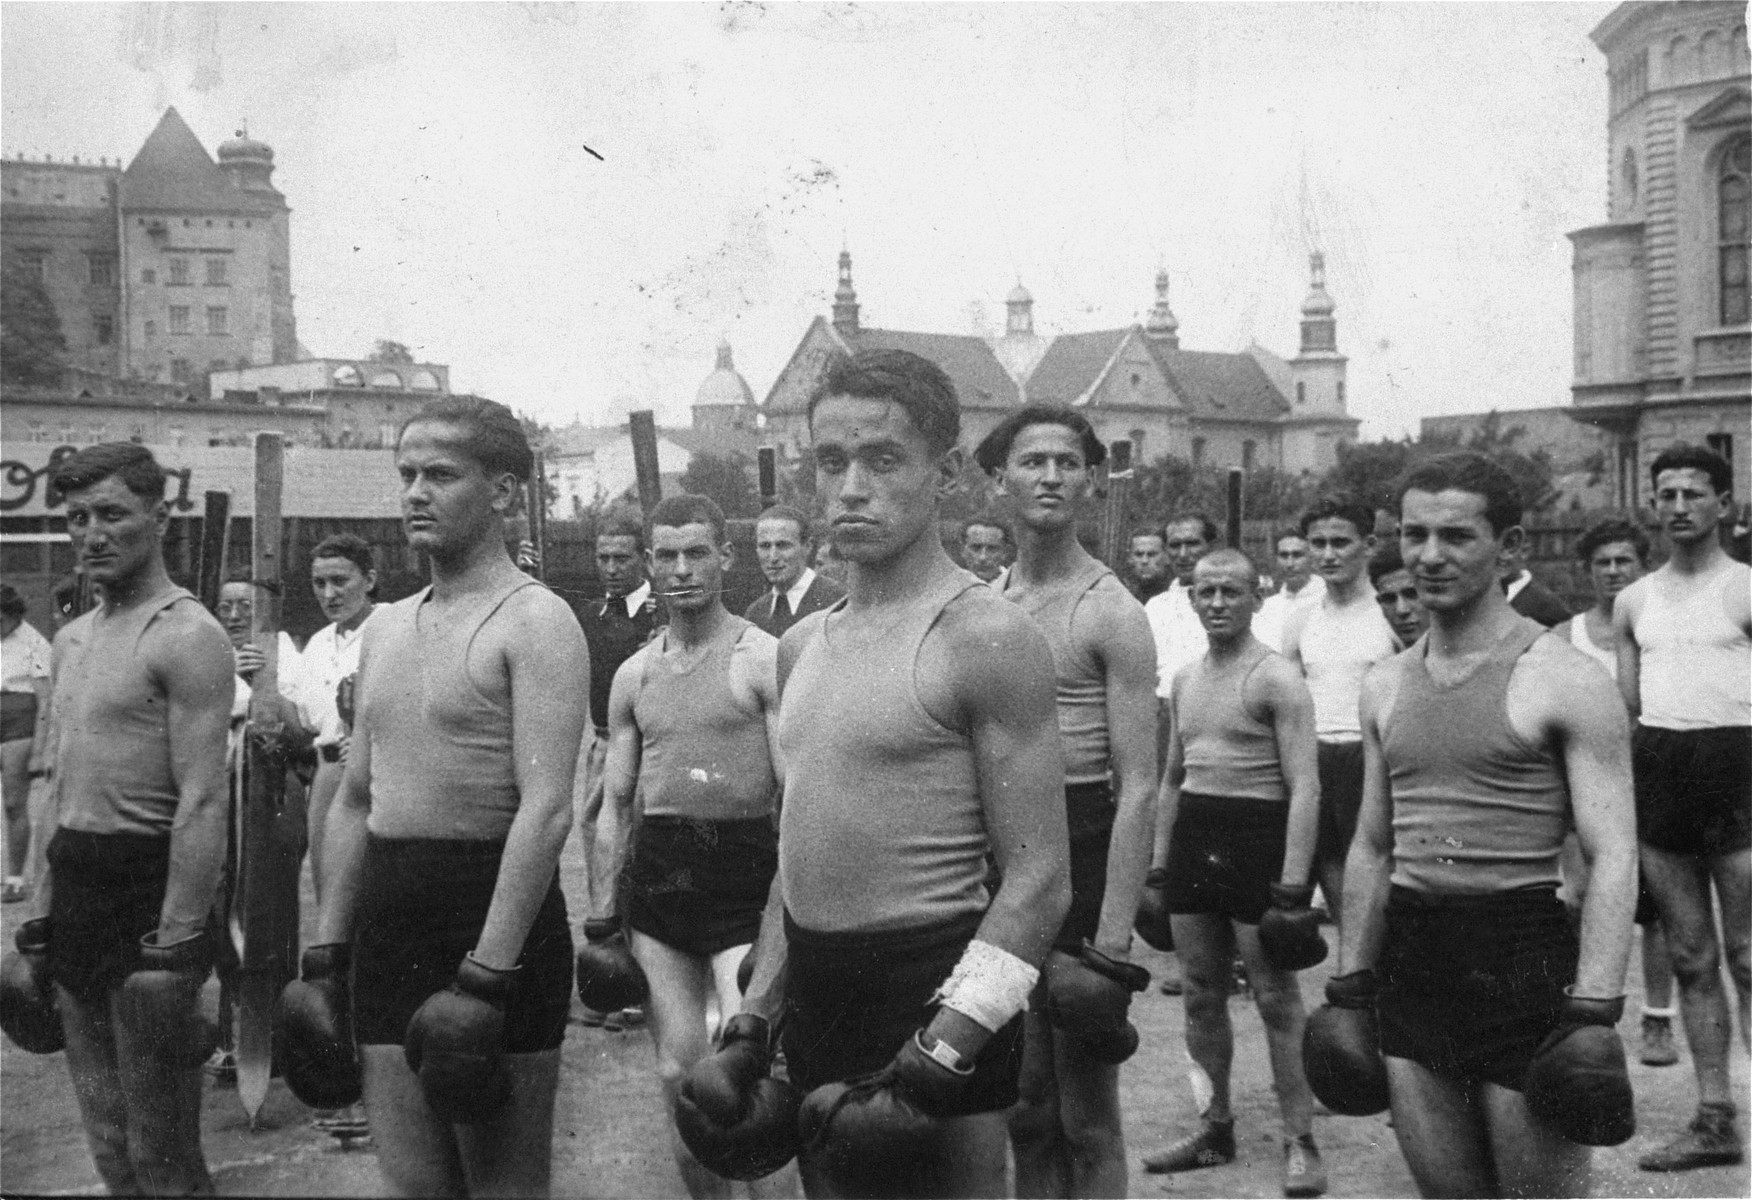 The Maccabi boxing team stands in formation wearing their boxing gloves in a square in Krakow.  Among those pictured is Fred Eichner (second row, far right).